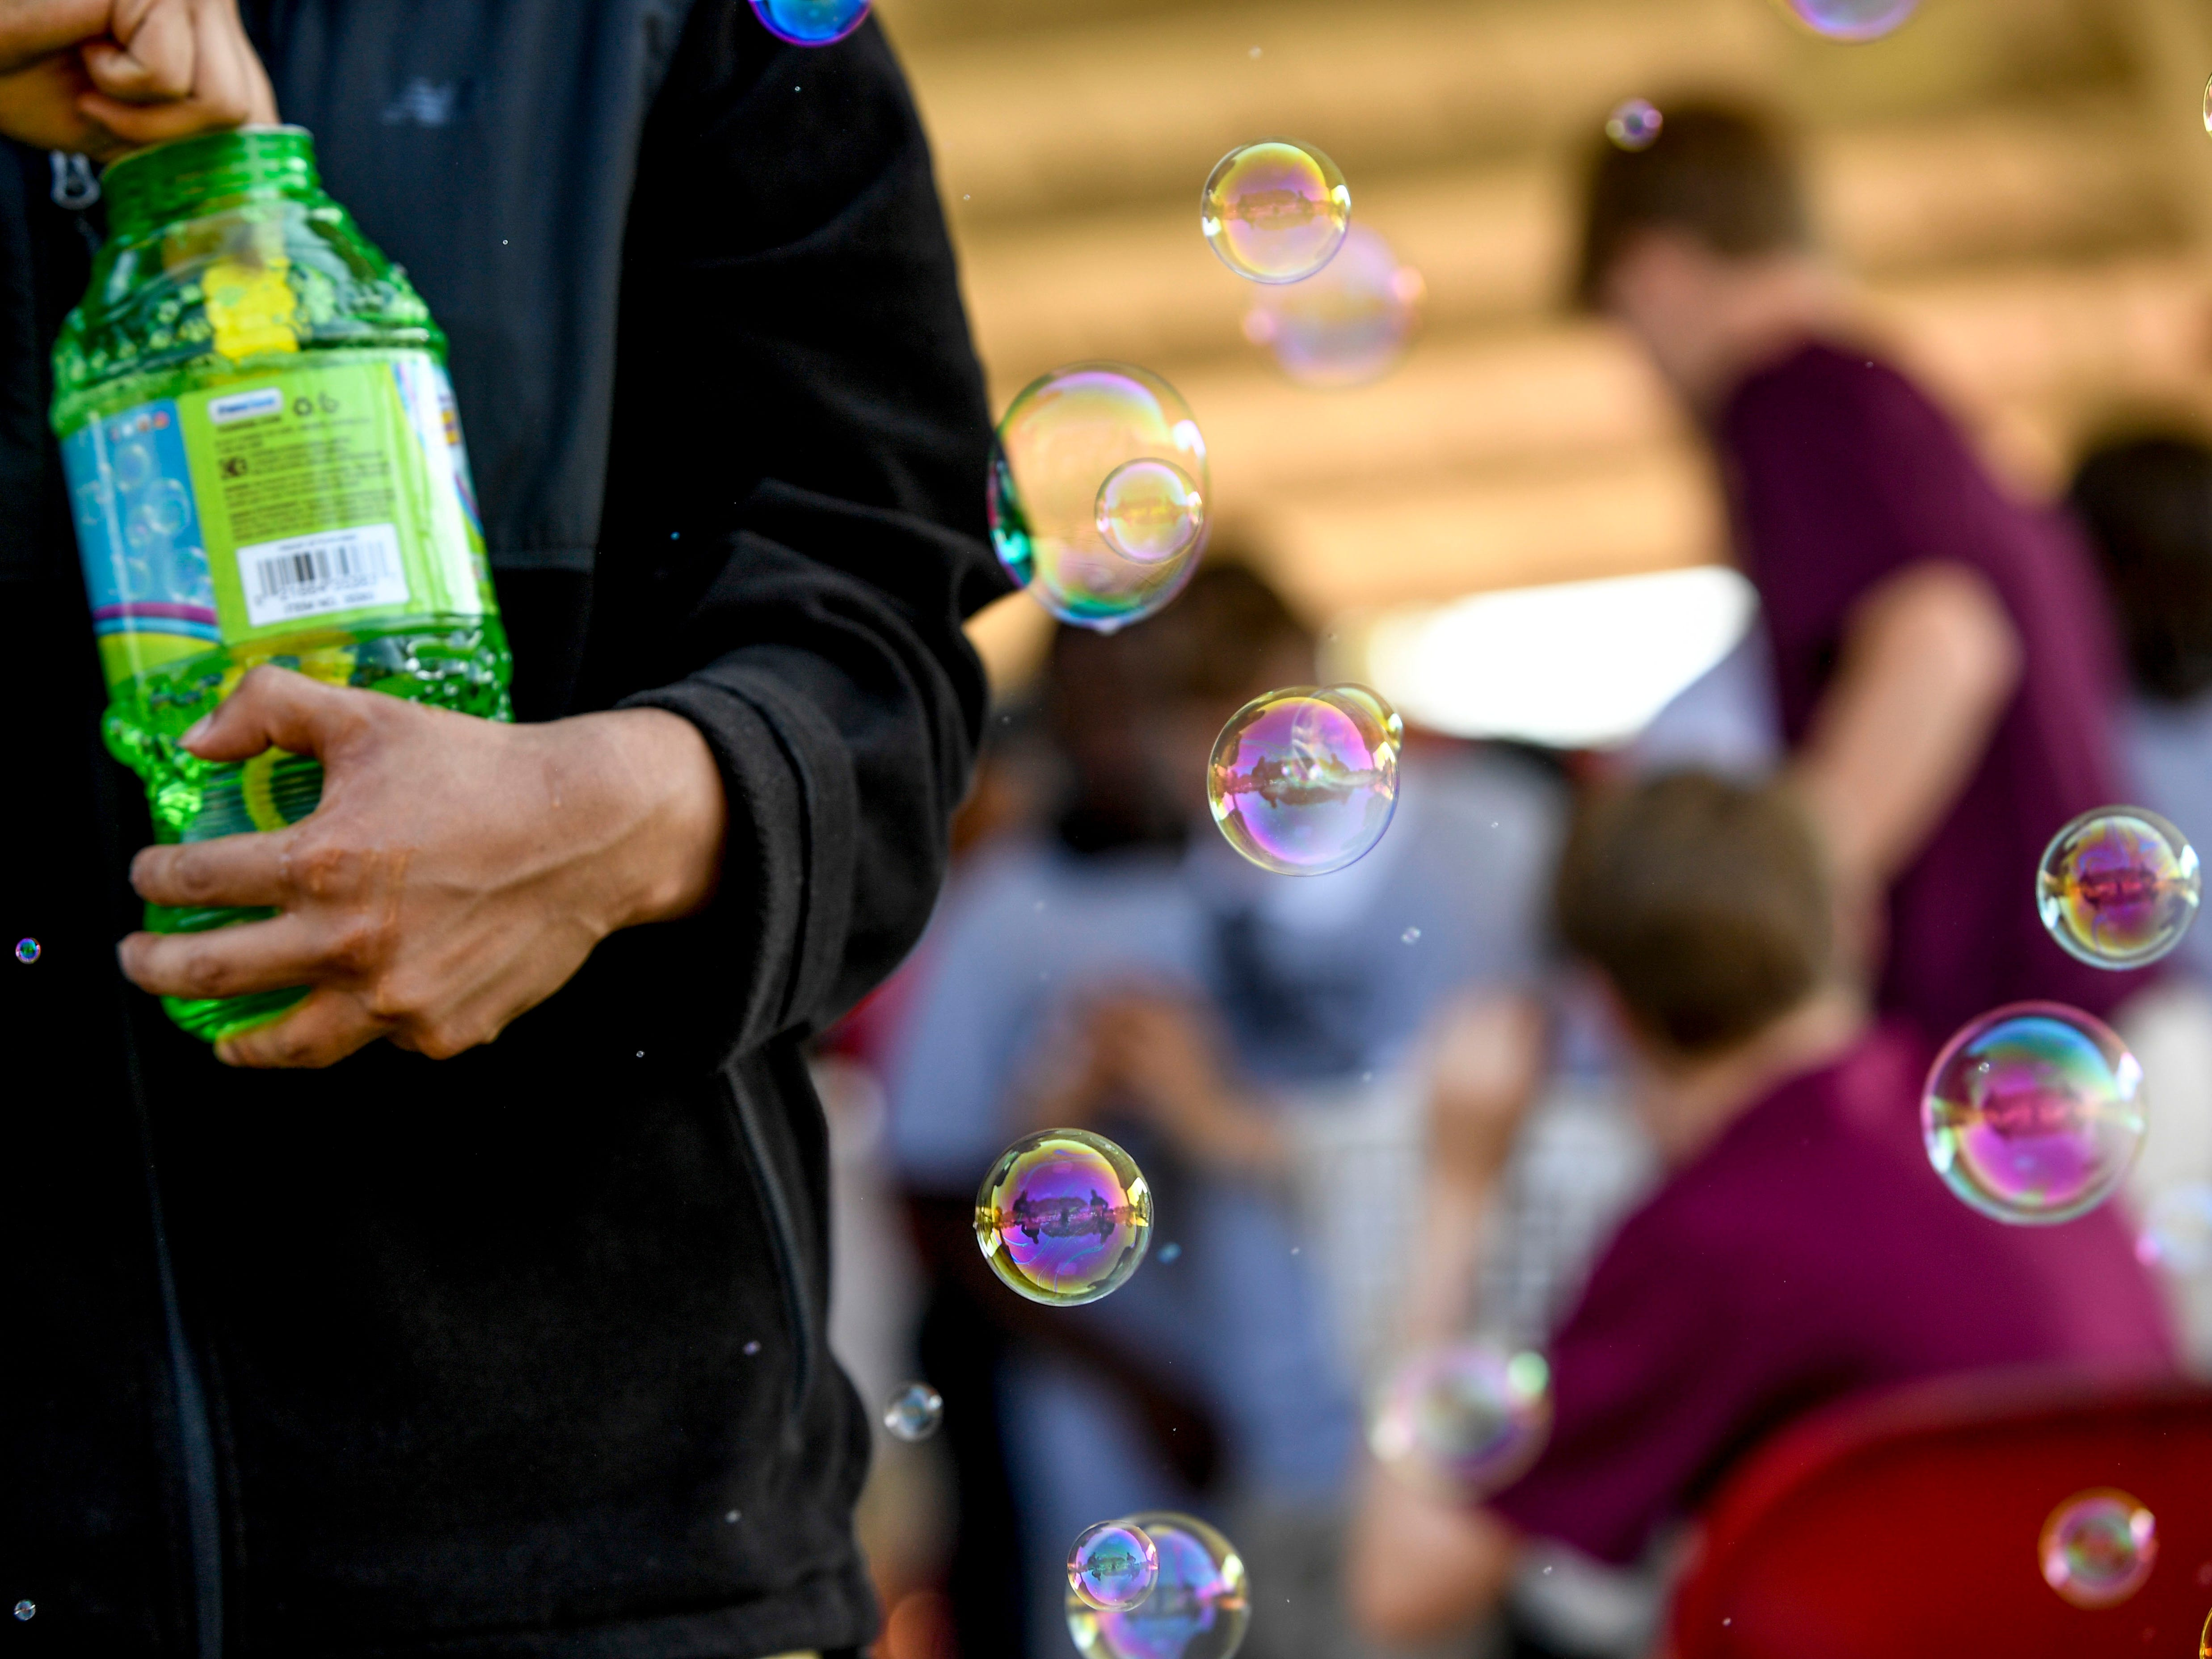 Bubbles float in the air at the Day of Champions celebration held at Jackson Fairgrounds Park in Jackson, Tenn., on Wednesday, Sept. 19, 2018.